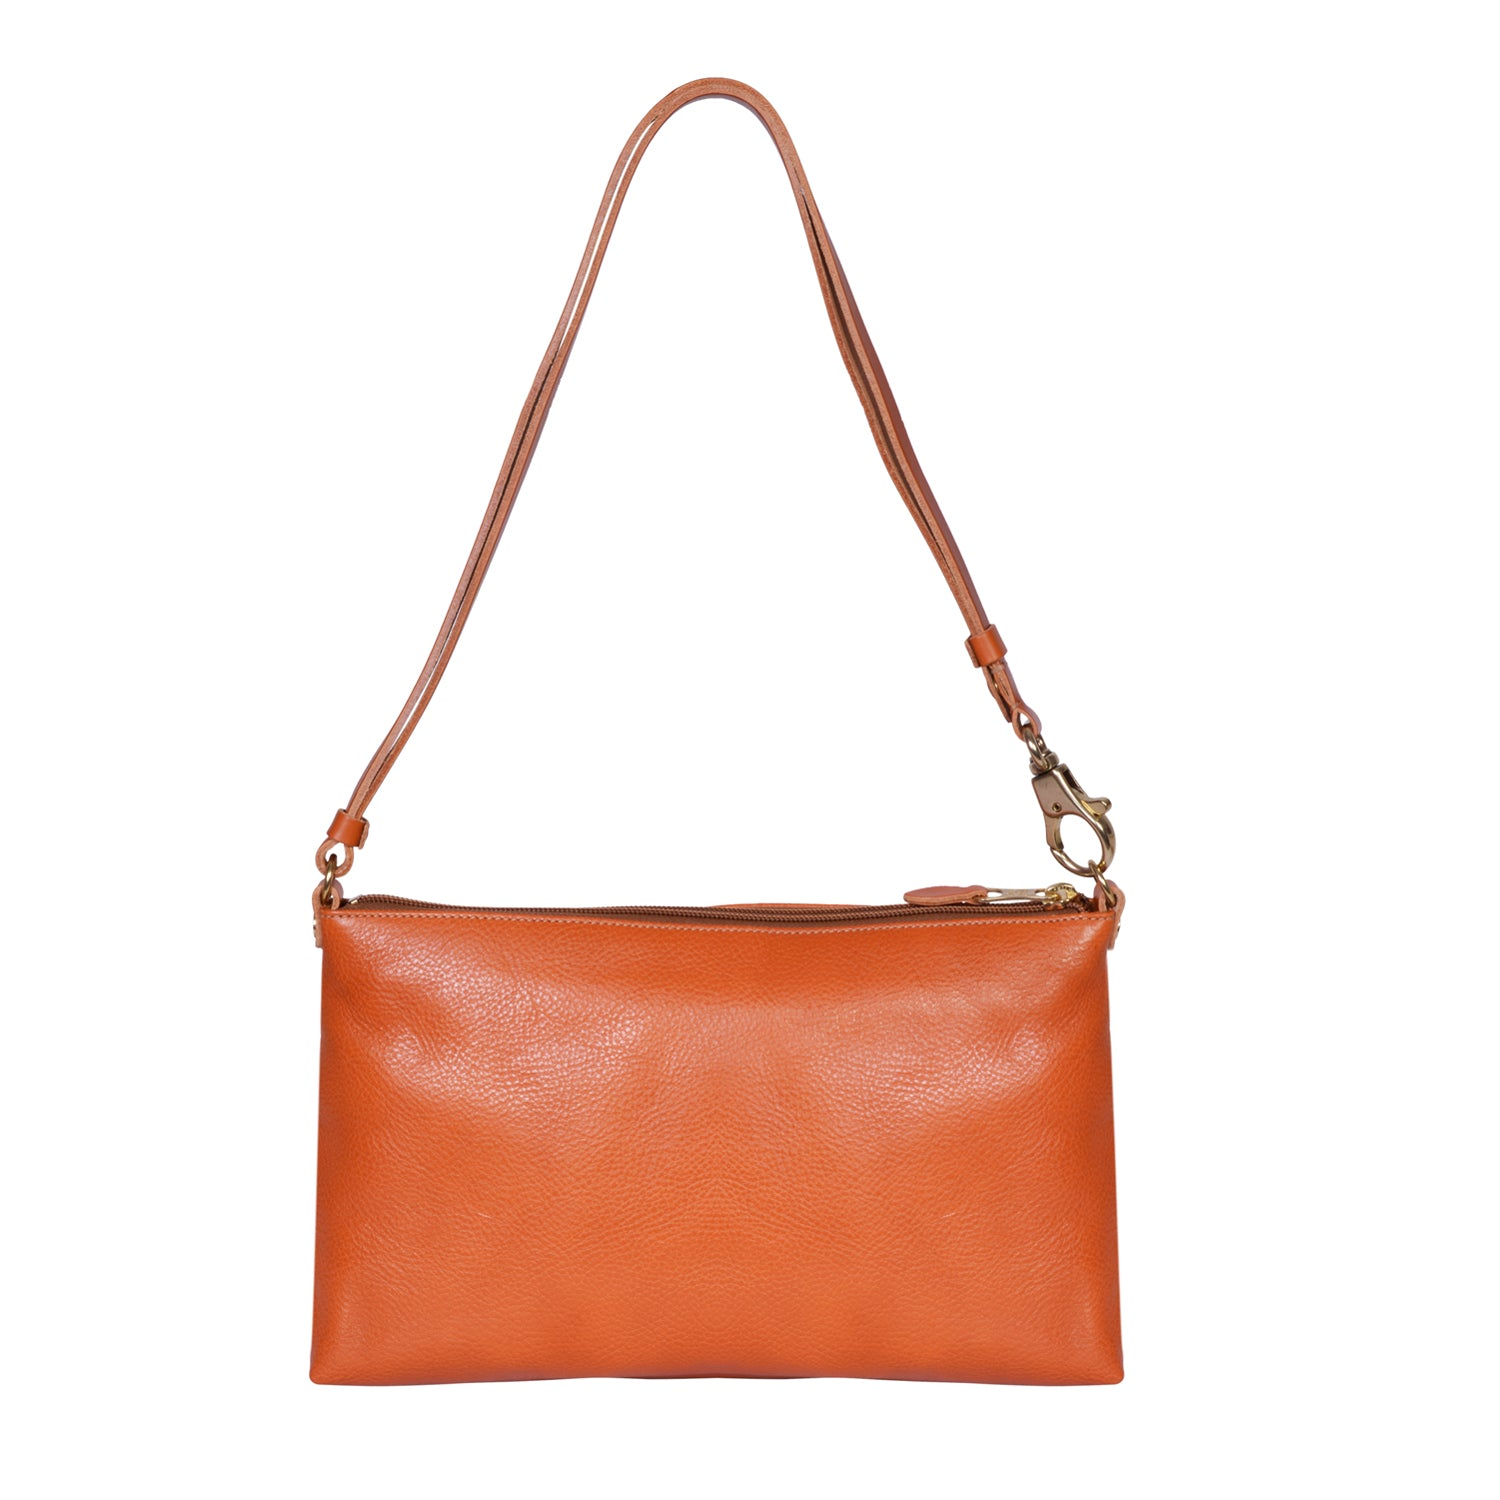 IL BISONTE  WOMAN'S  SHOULDER BAG  IN CARAMEL COWHIDE LEATHER